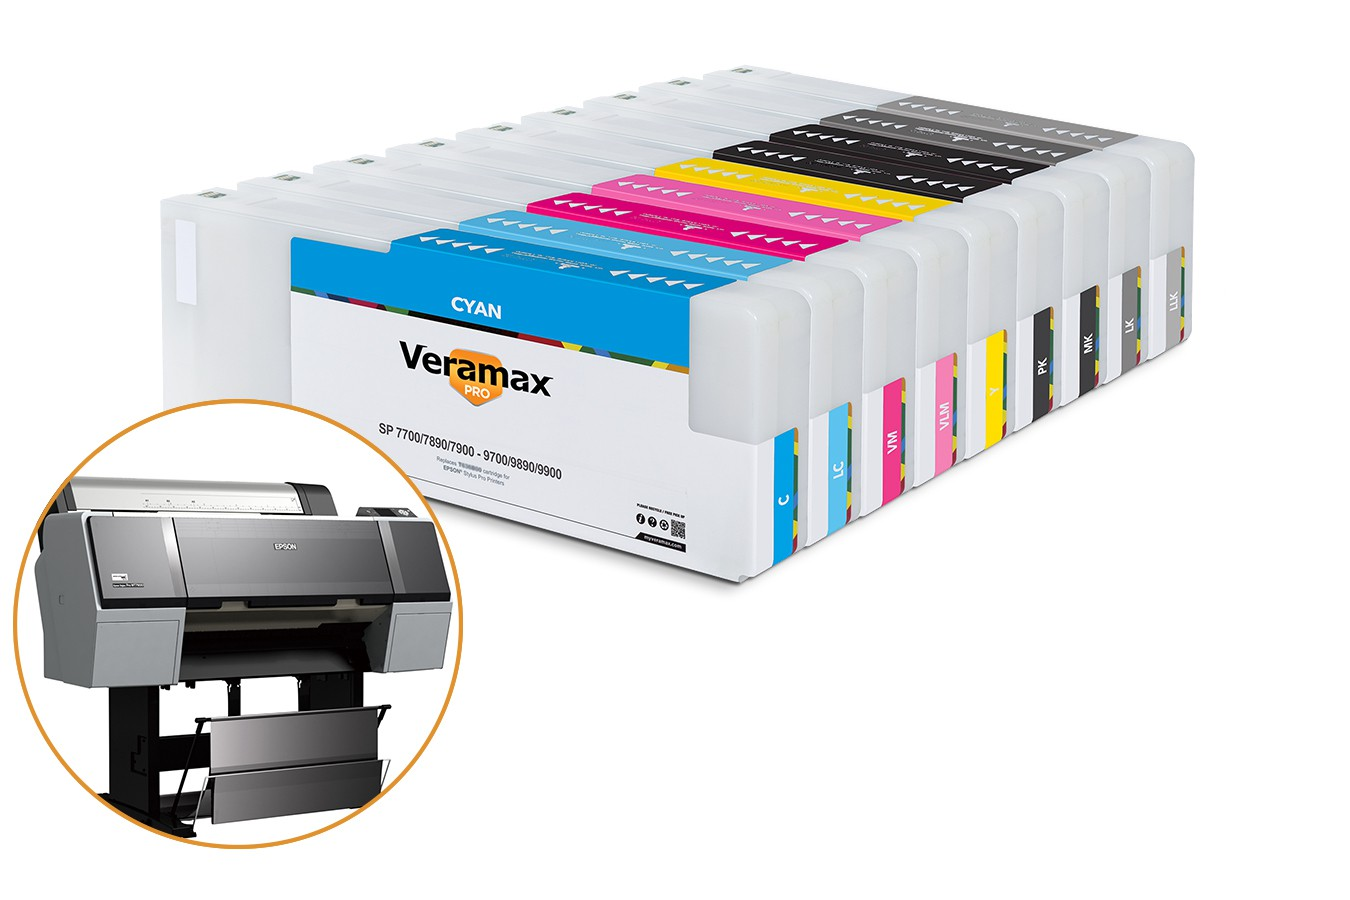 Veramax PRO Ink Cartridges for Stylus Pro 7890-9890 Printers